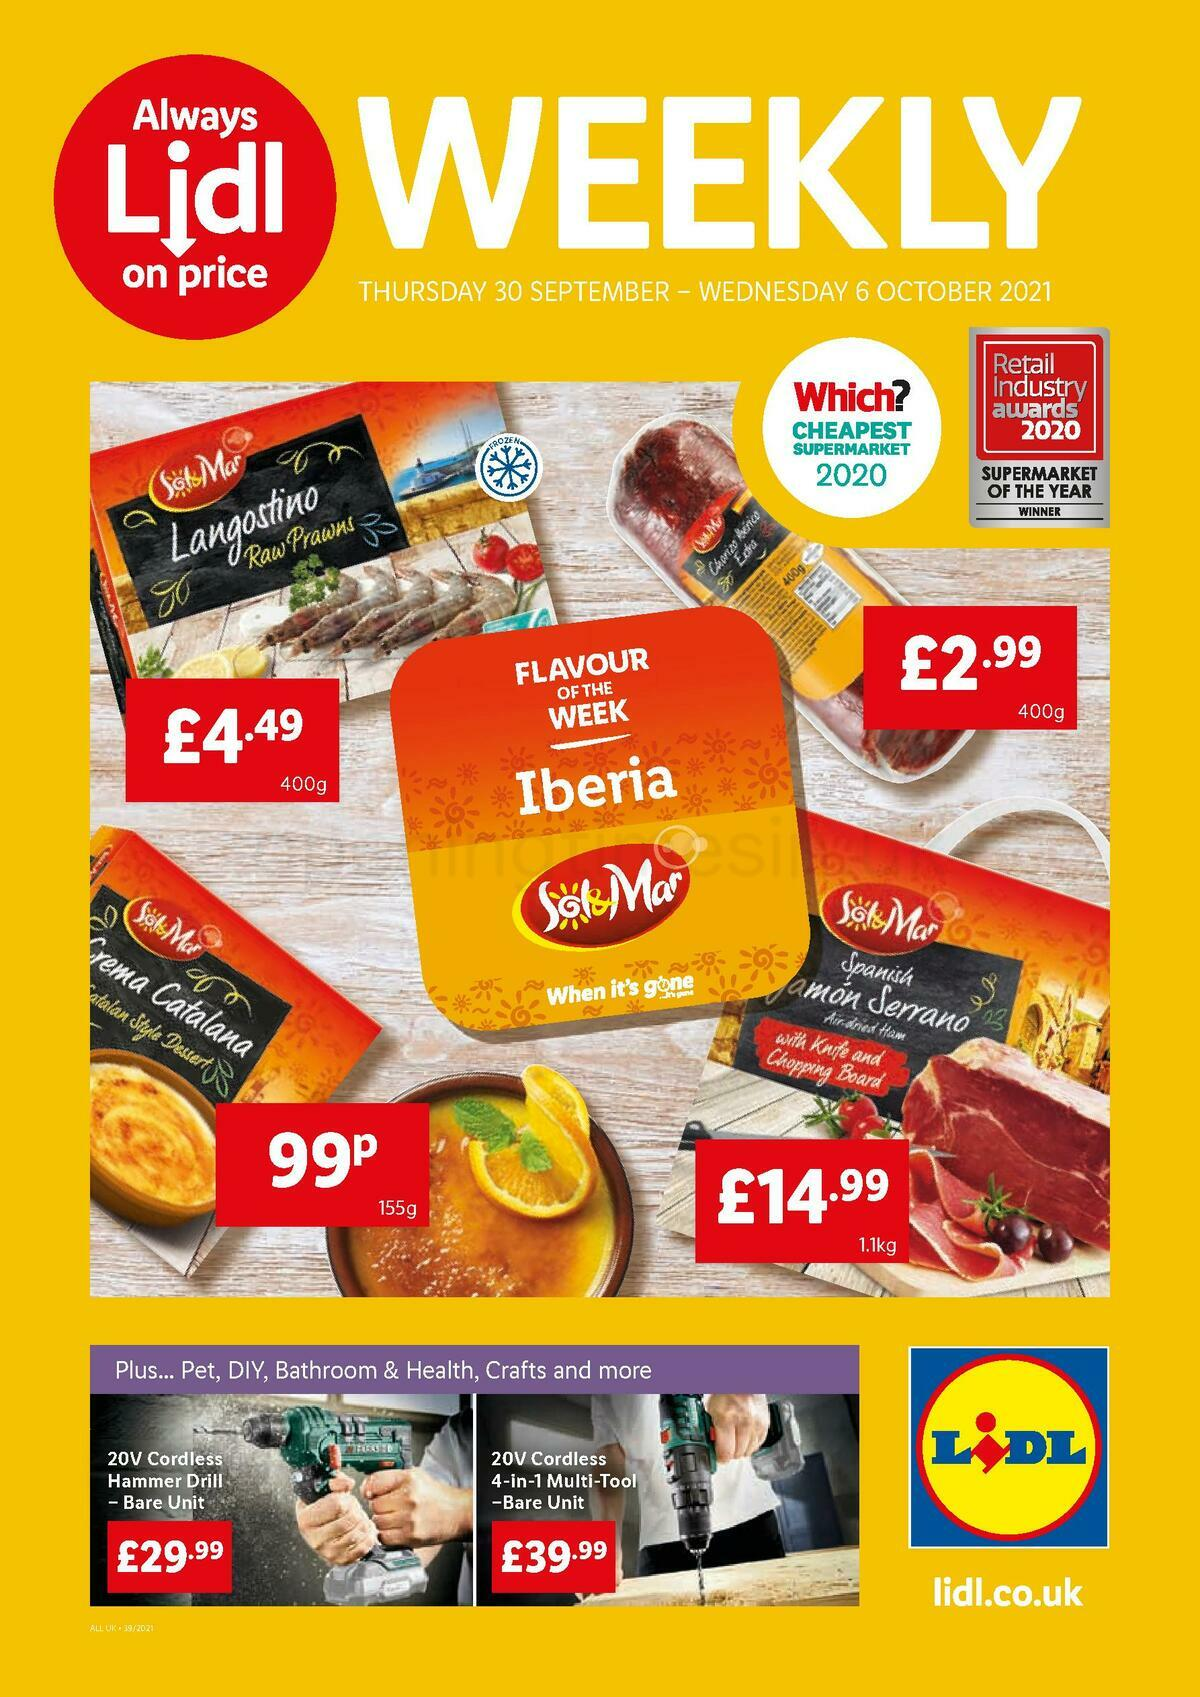 LIDL Offers from September 30